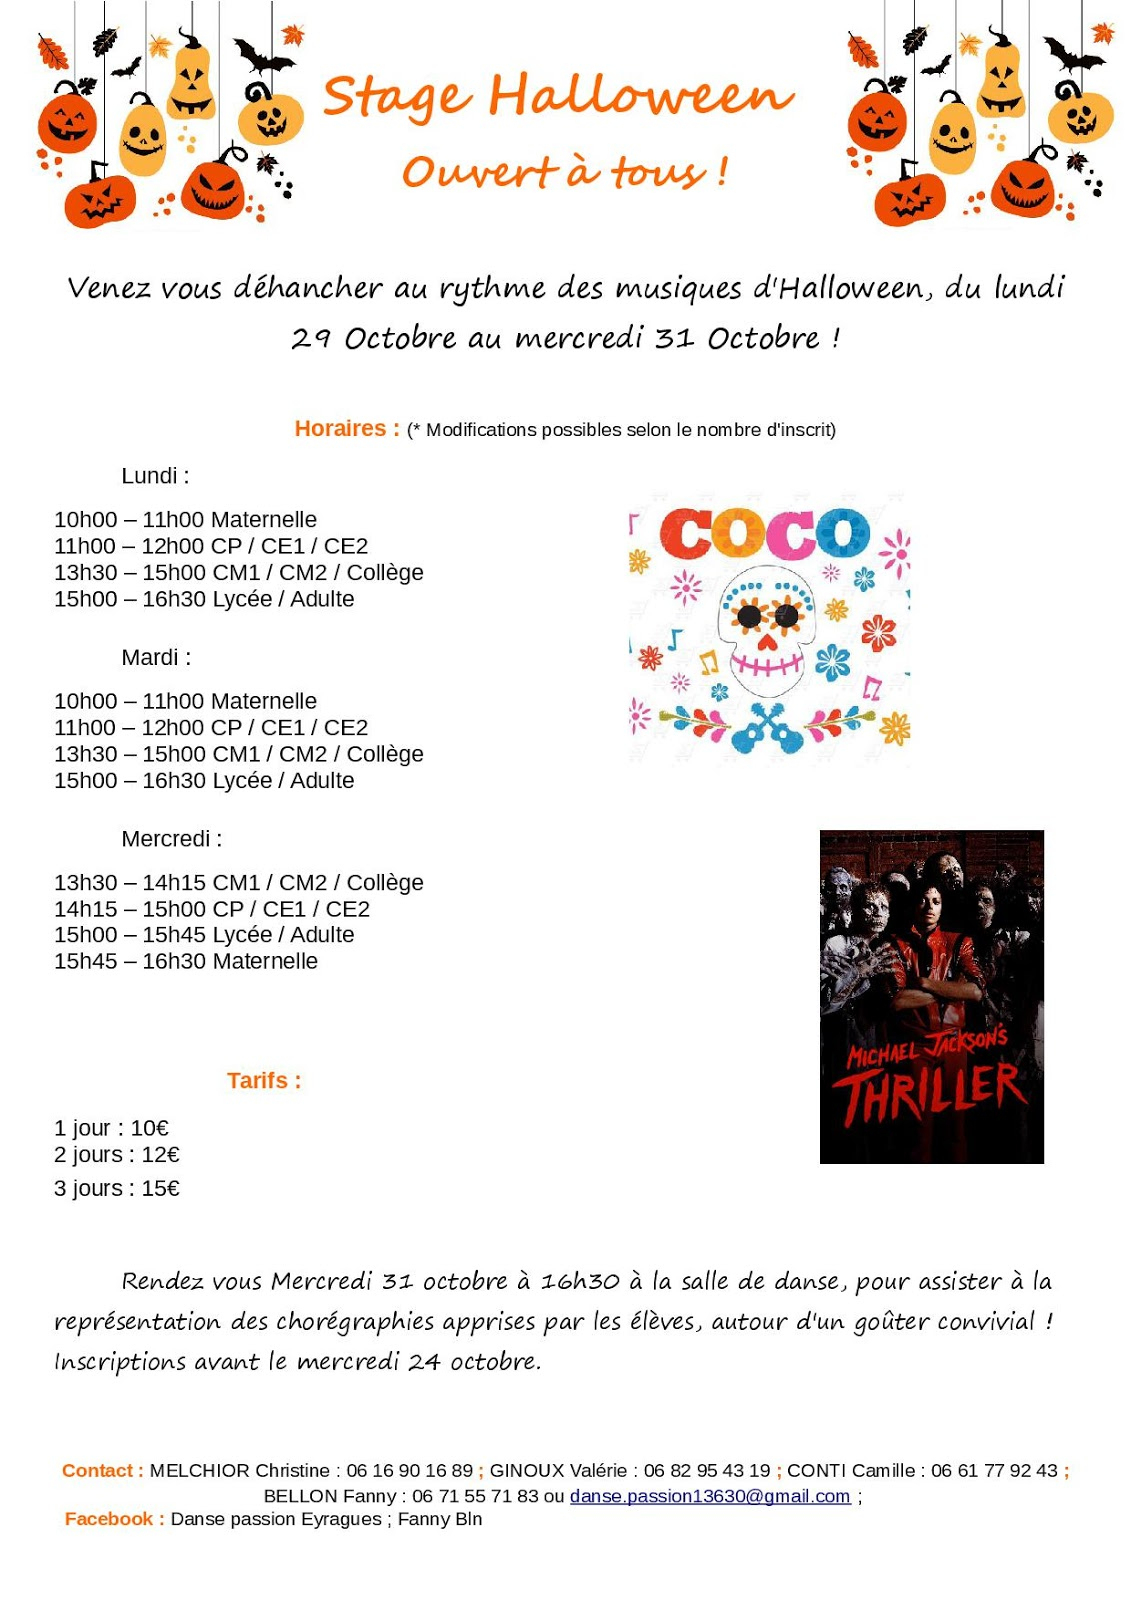 Le Journal D'eyragues: Danse Passion : Stage Halloween! encequiconcerne Halloween Ce2